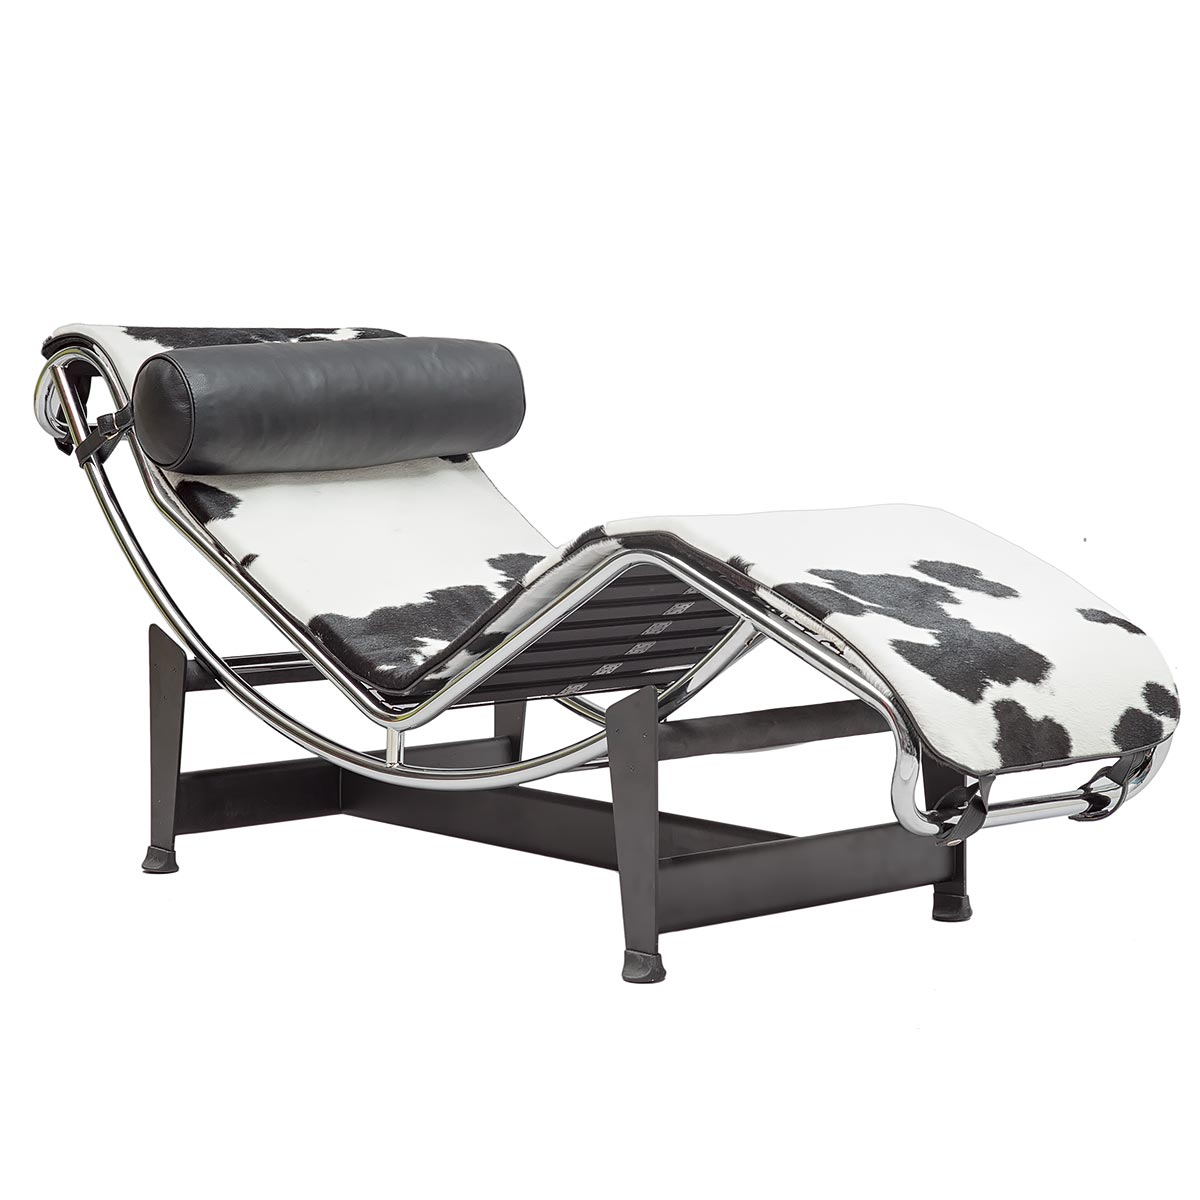 Corbusier Chaise Longue | a steelform design classic